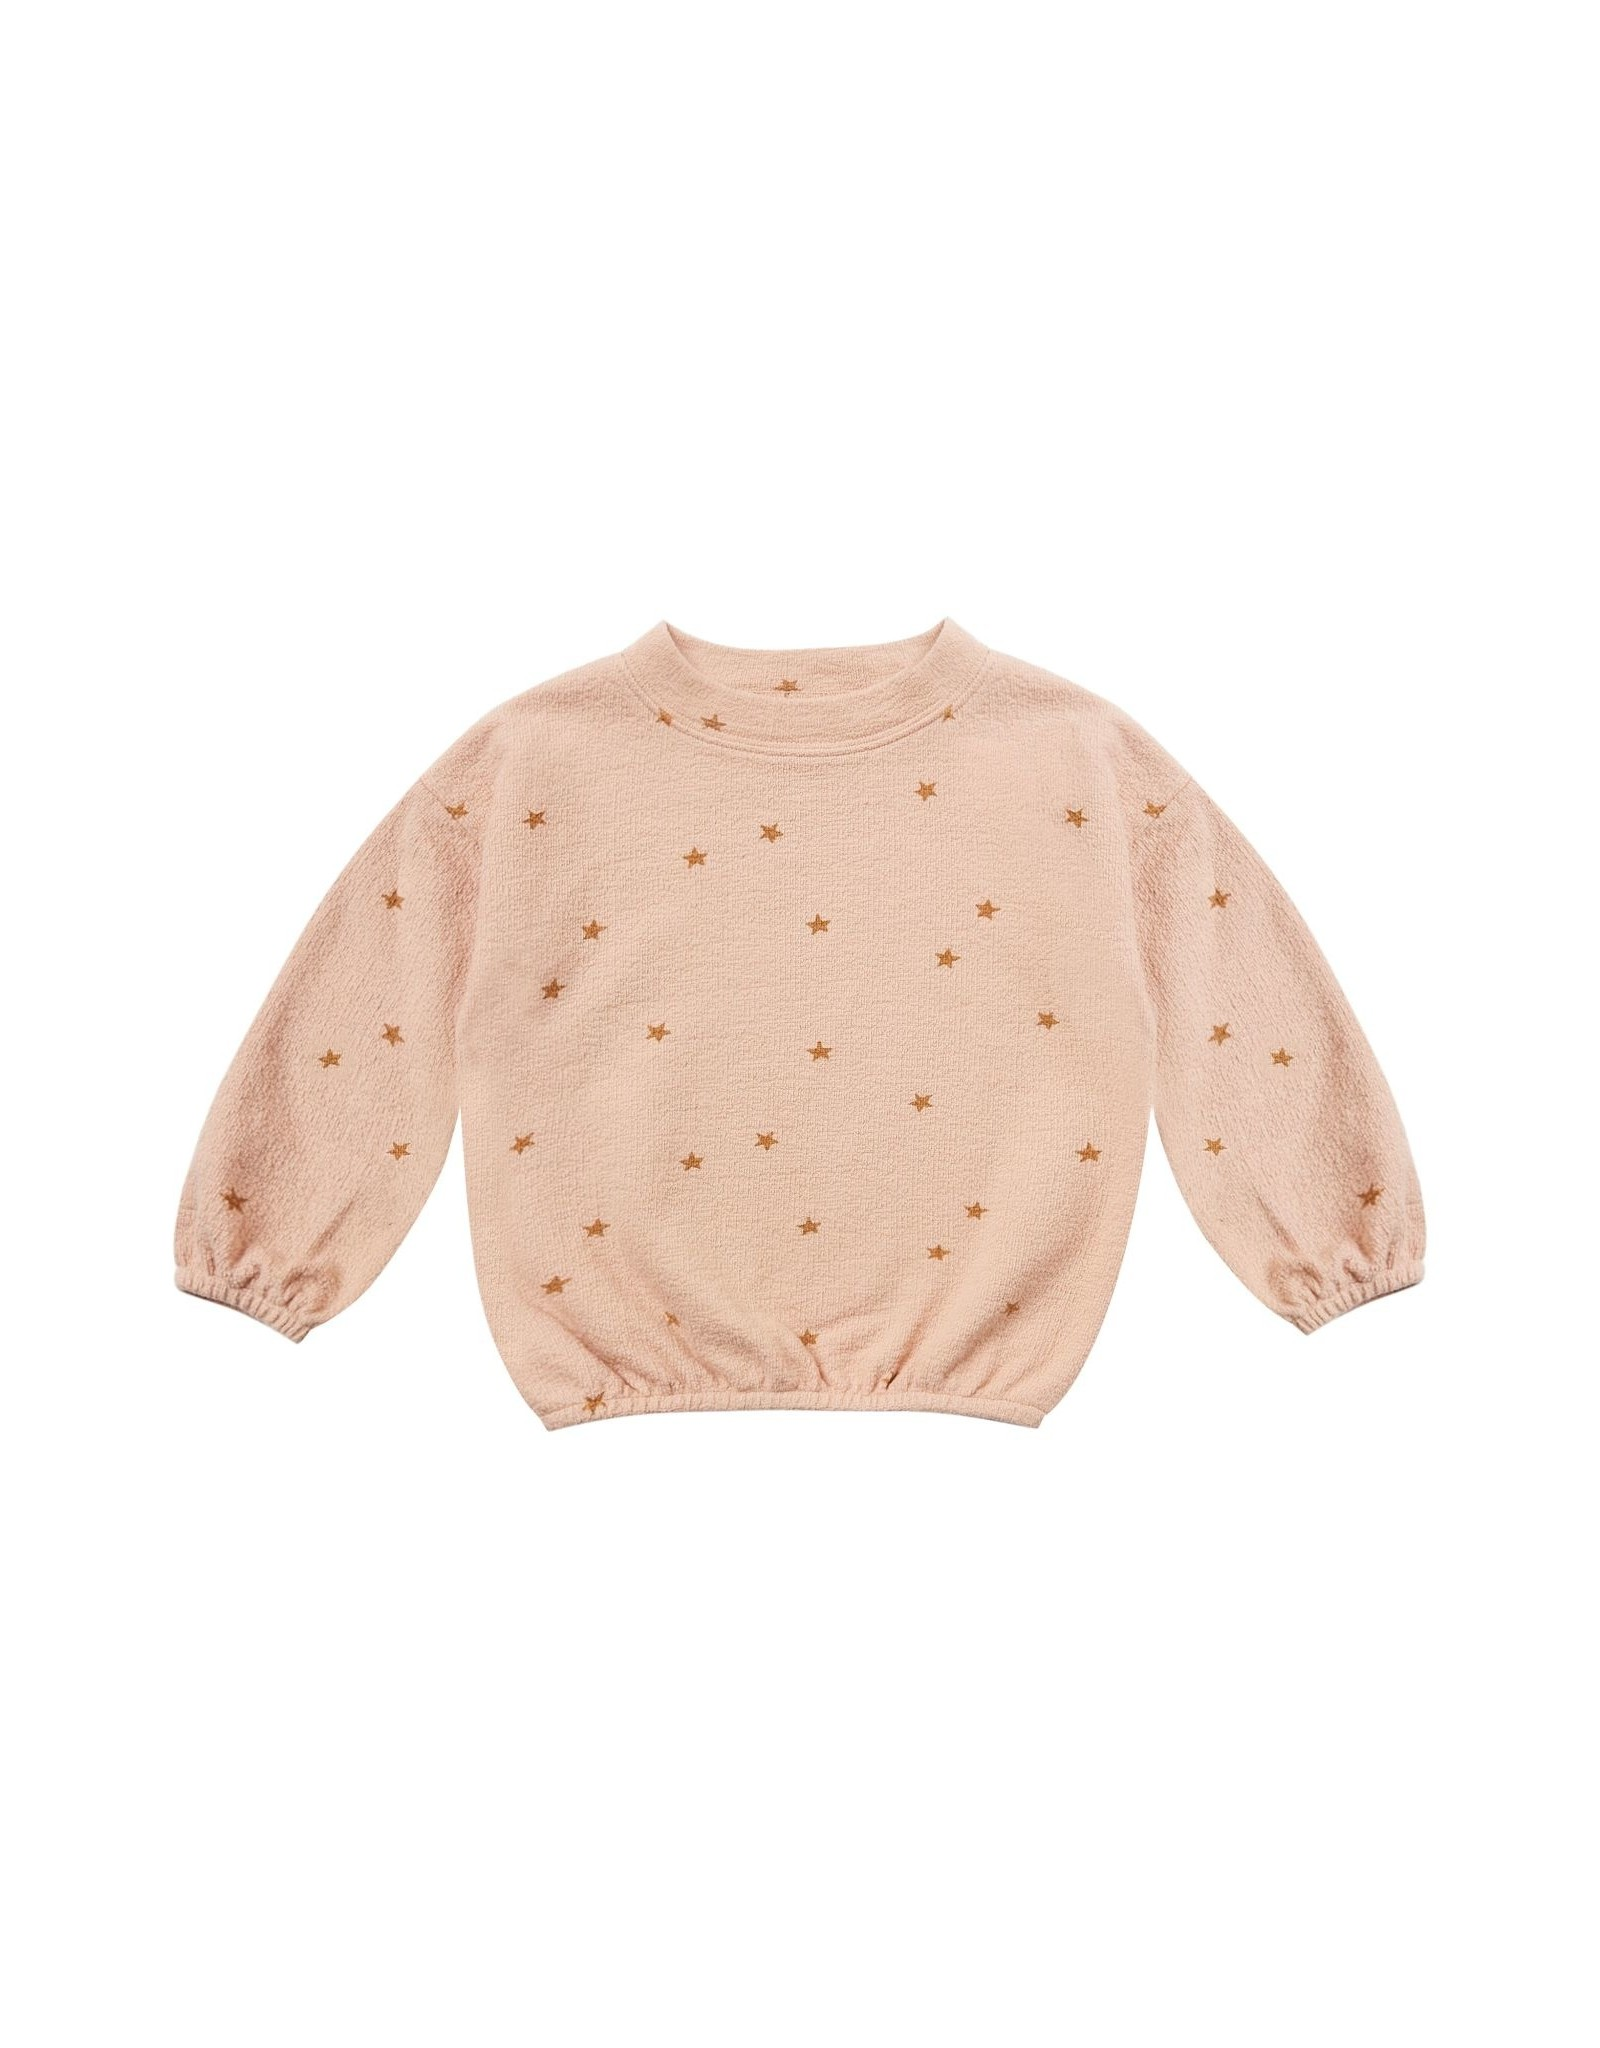 Rylee and Cru star slouchy pullover- rose